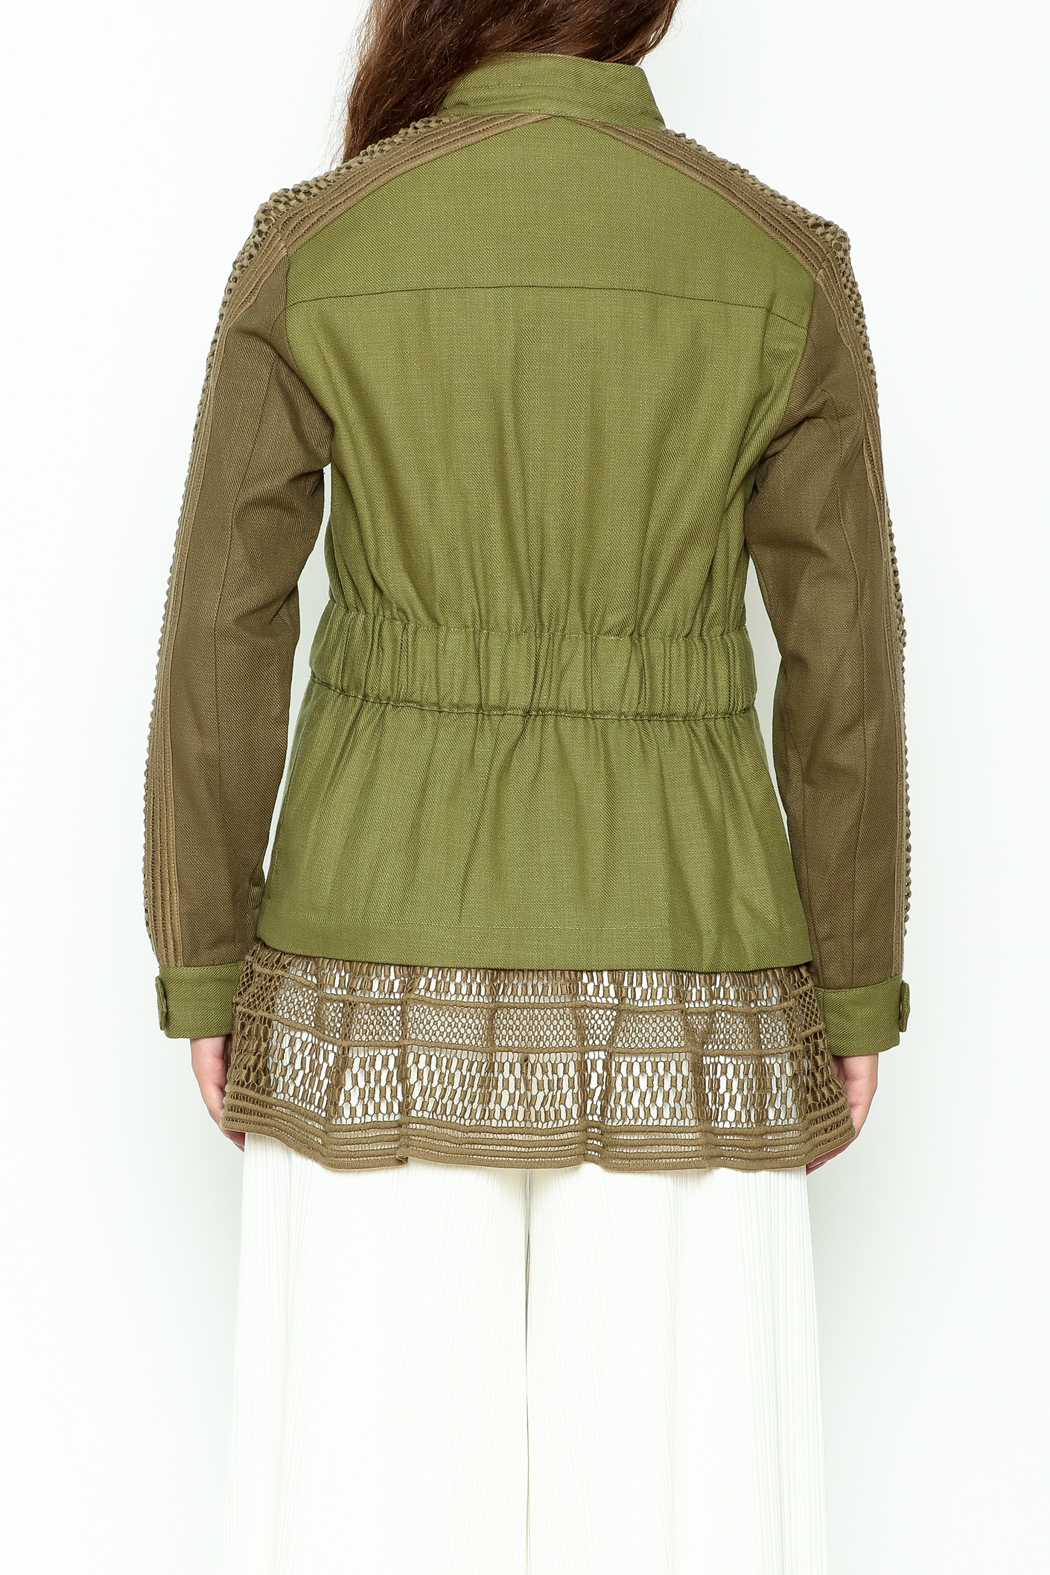 SEA Baja Lace Military Jacket - Back Cropped Image